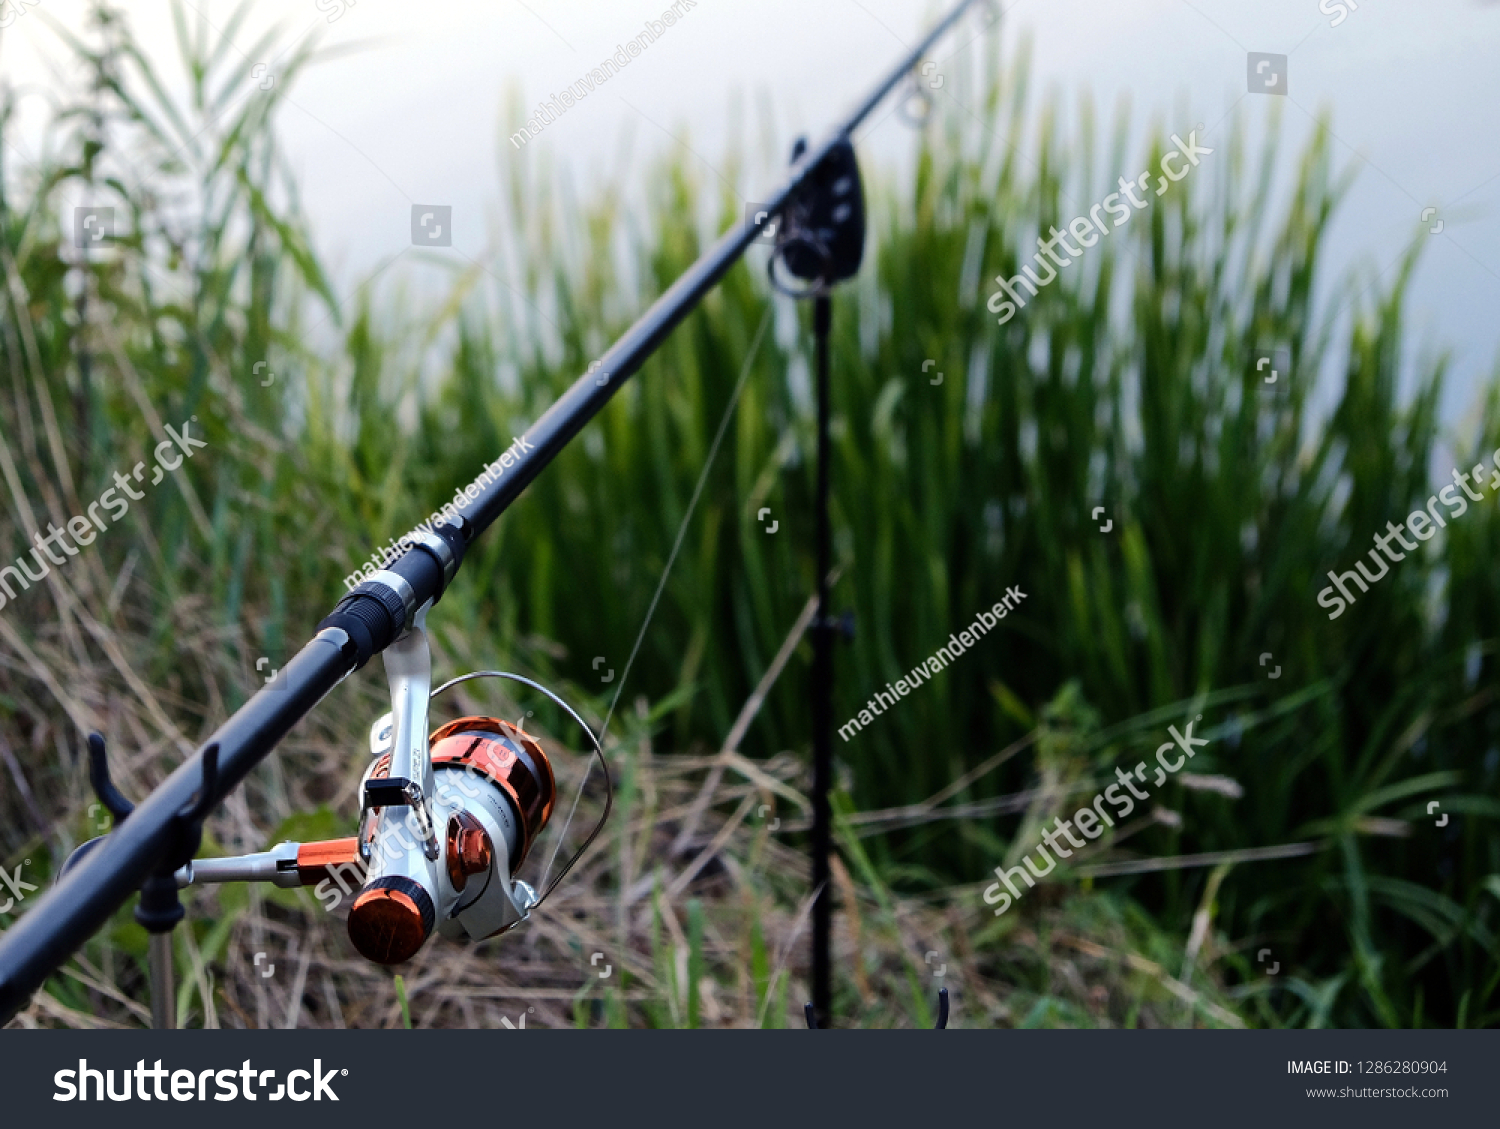 Fishing rod by a river in the summer #1286280904